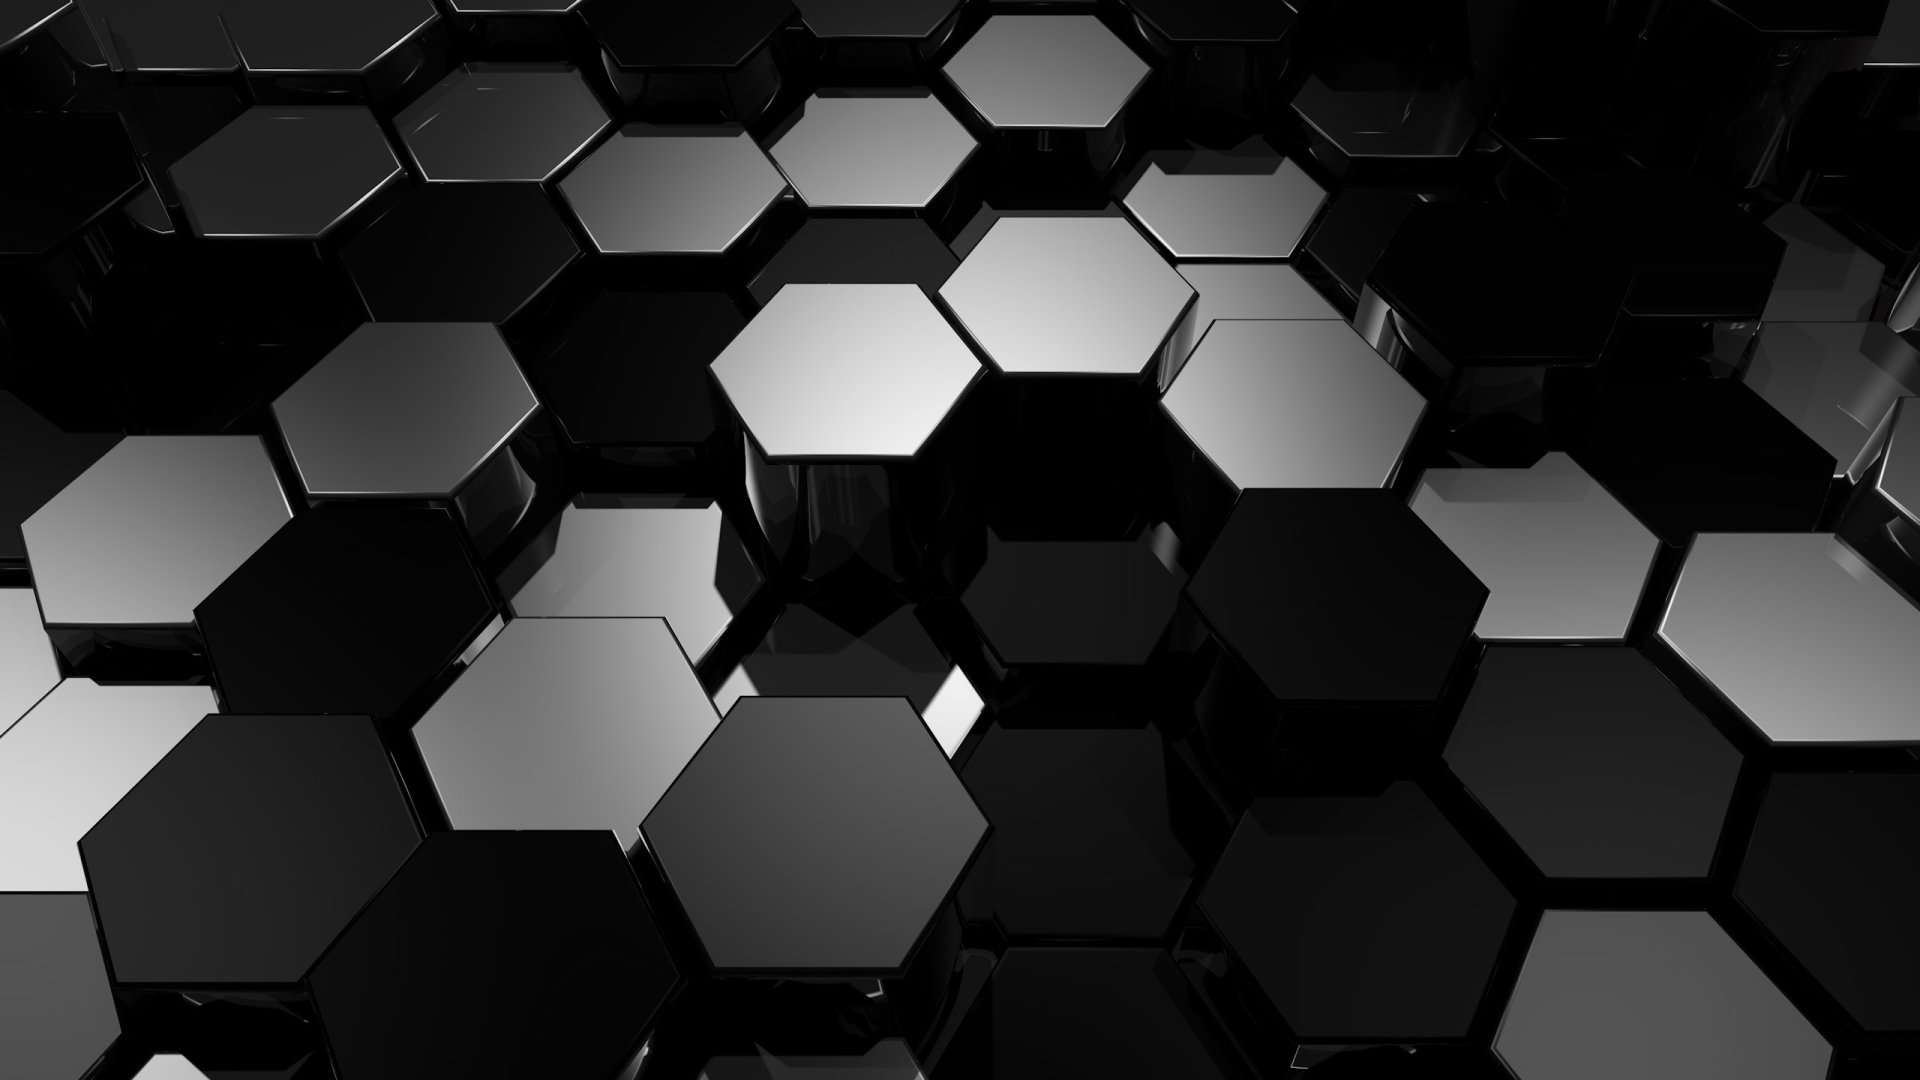 Pattern - Hexagon  Wallpaper